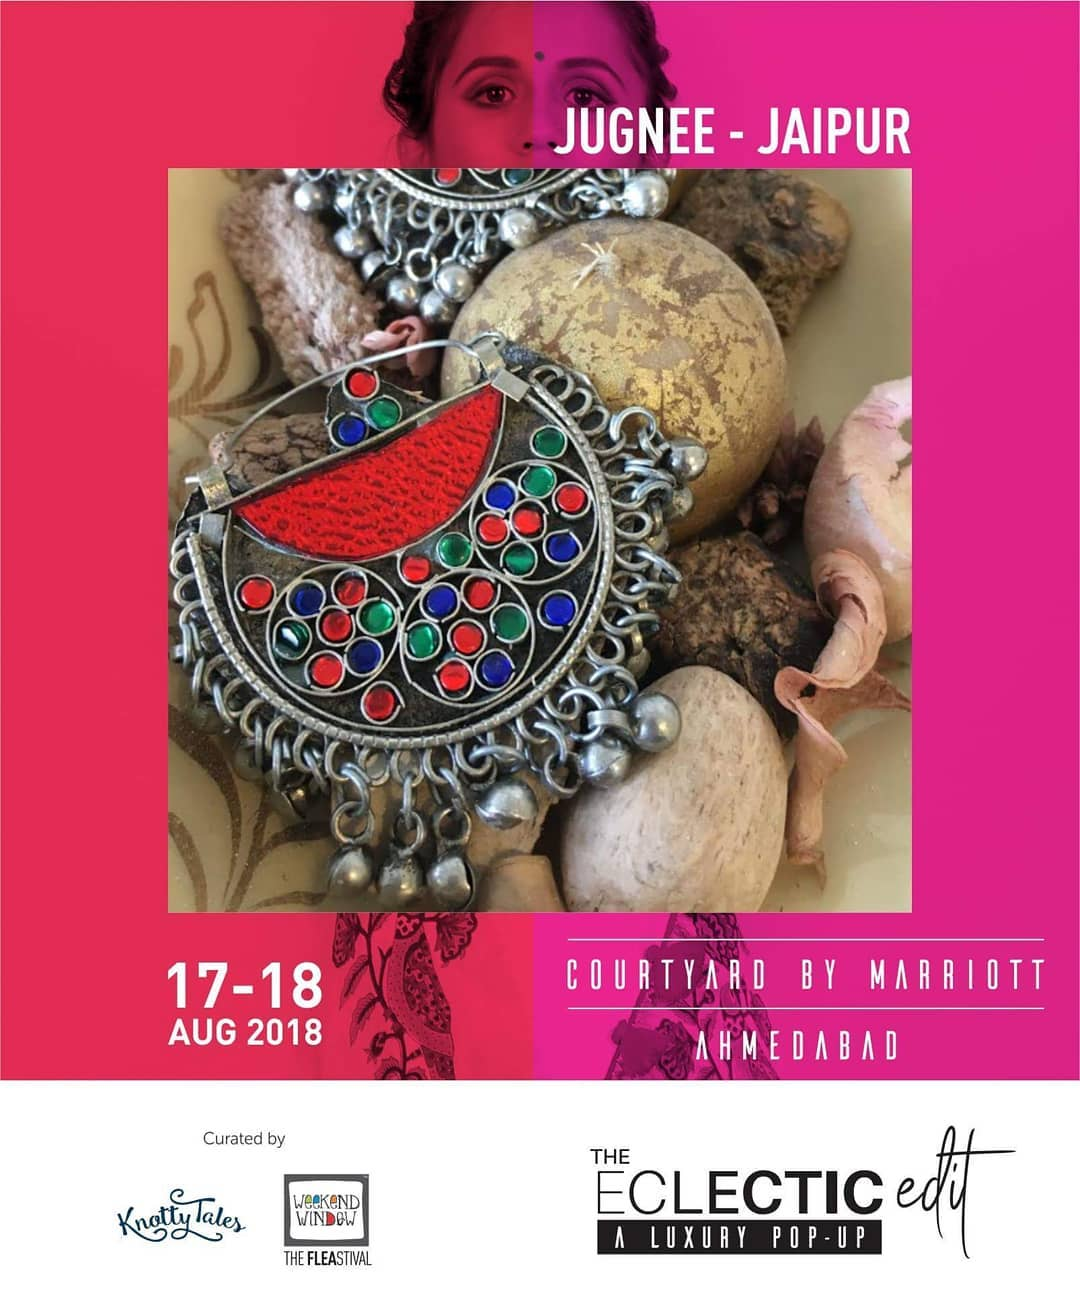 @jugnee_by_vallari is specialized in handcrafted luxury fashion & trendy tribal jewellery. They bring to you the essence of Jaipur in its truest form  Showcasing with 65+ designers this 17th-18th August at The Eclectic Edit - Season 3 curated by Knotty Tales & Weekend Window at Courtyard by Marriott Ahmedabad . . #ethnicwear #instagood #color #photooftheday #outfit #freedom  #elegant #accessories #classy #style #influencer #fashion #fashionista #instasyle #fashiondiaries #brillantkatiranga #jugneejaipur #weekendwindow #kottytales #theeclecticedit